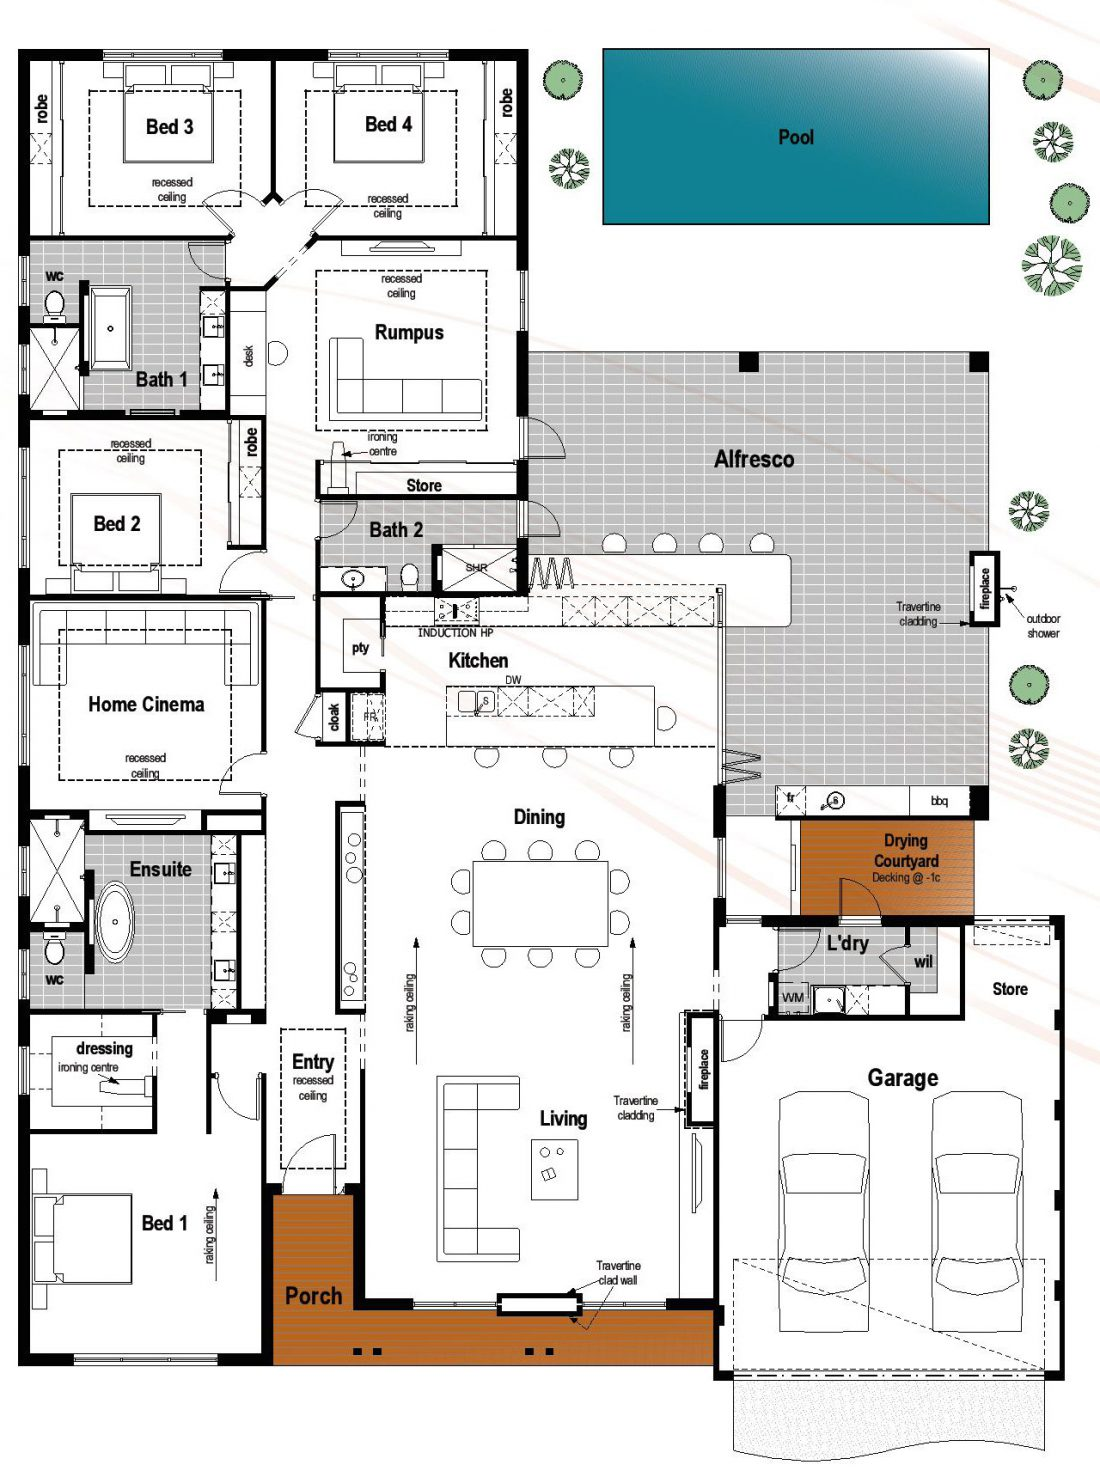 Floor plan friday 4 bedroom 3 bathroom with modern for Area of a floor plan